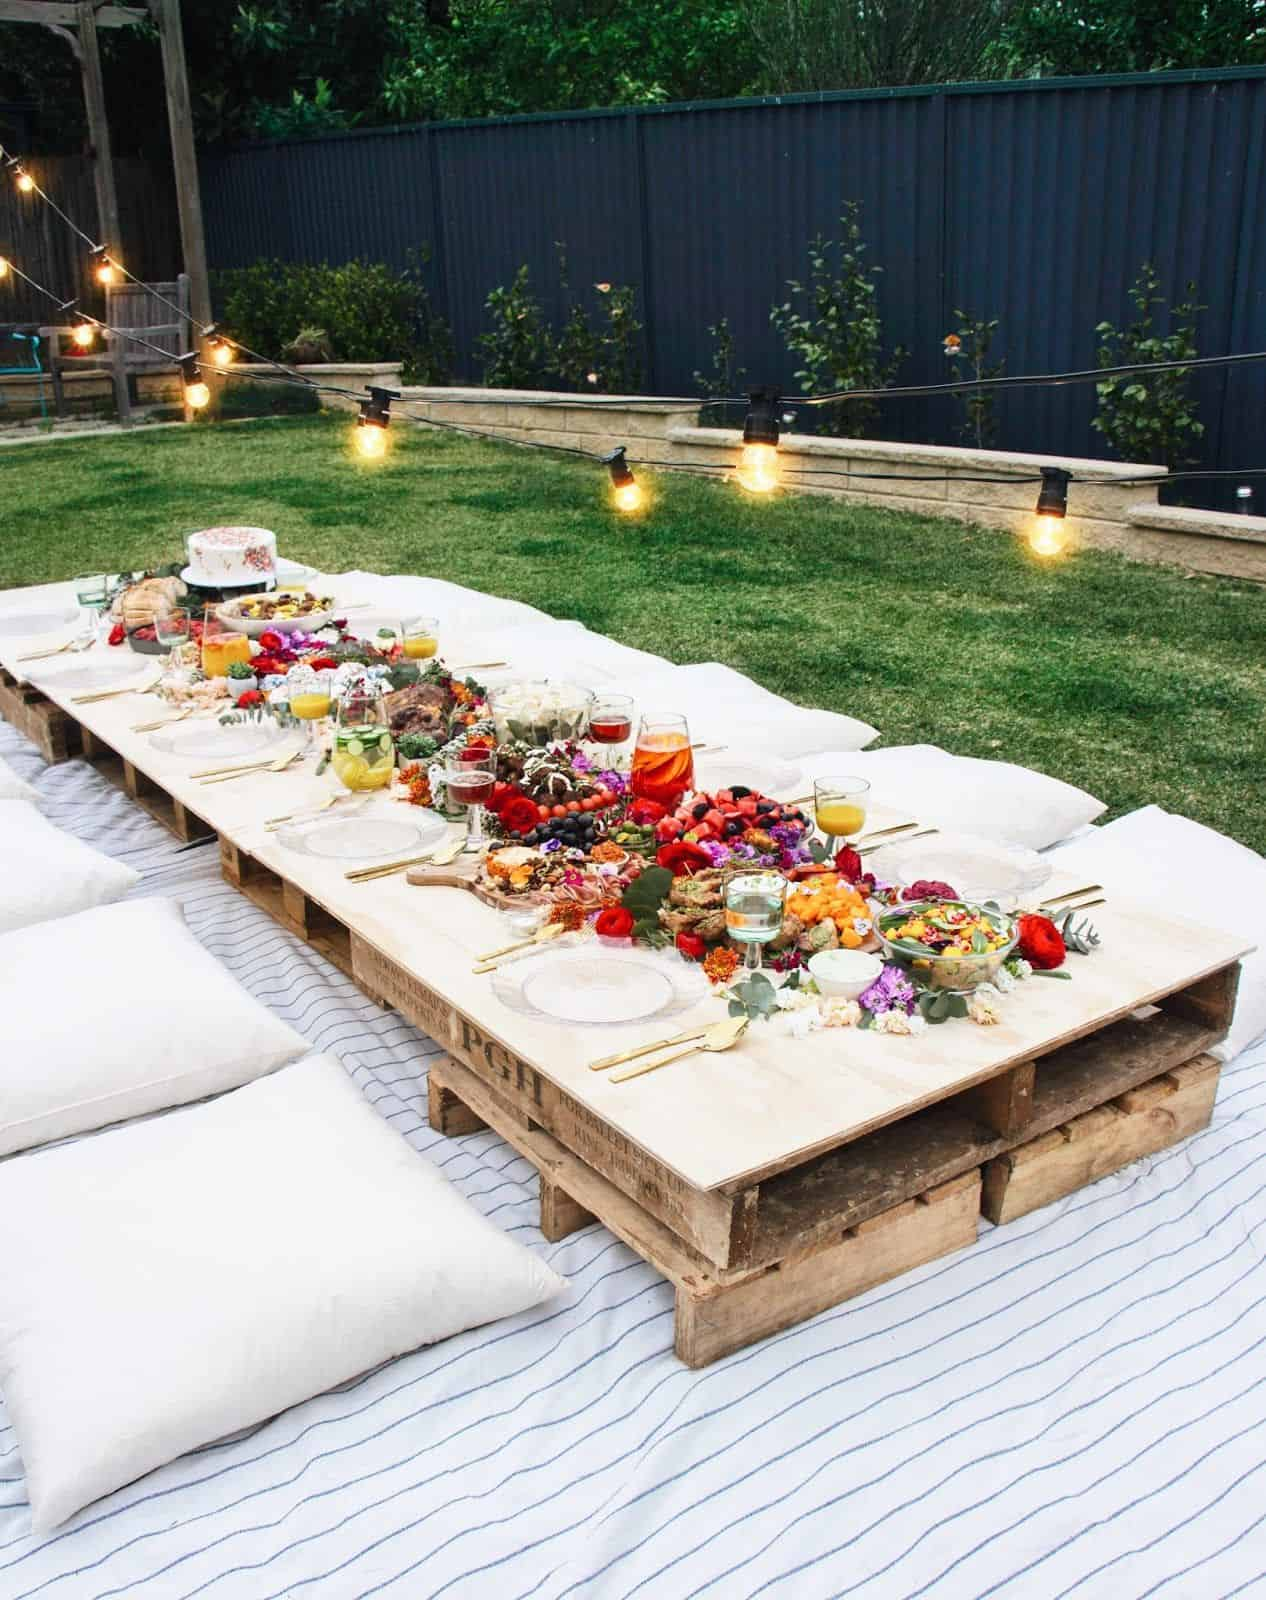 Garden Party Ideas To Embrace Summer - Garden-parties-ideas